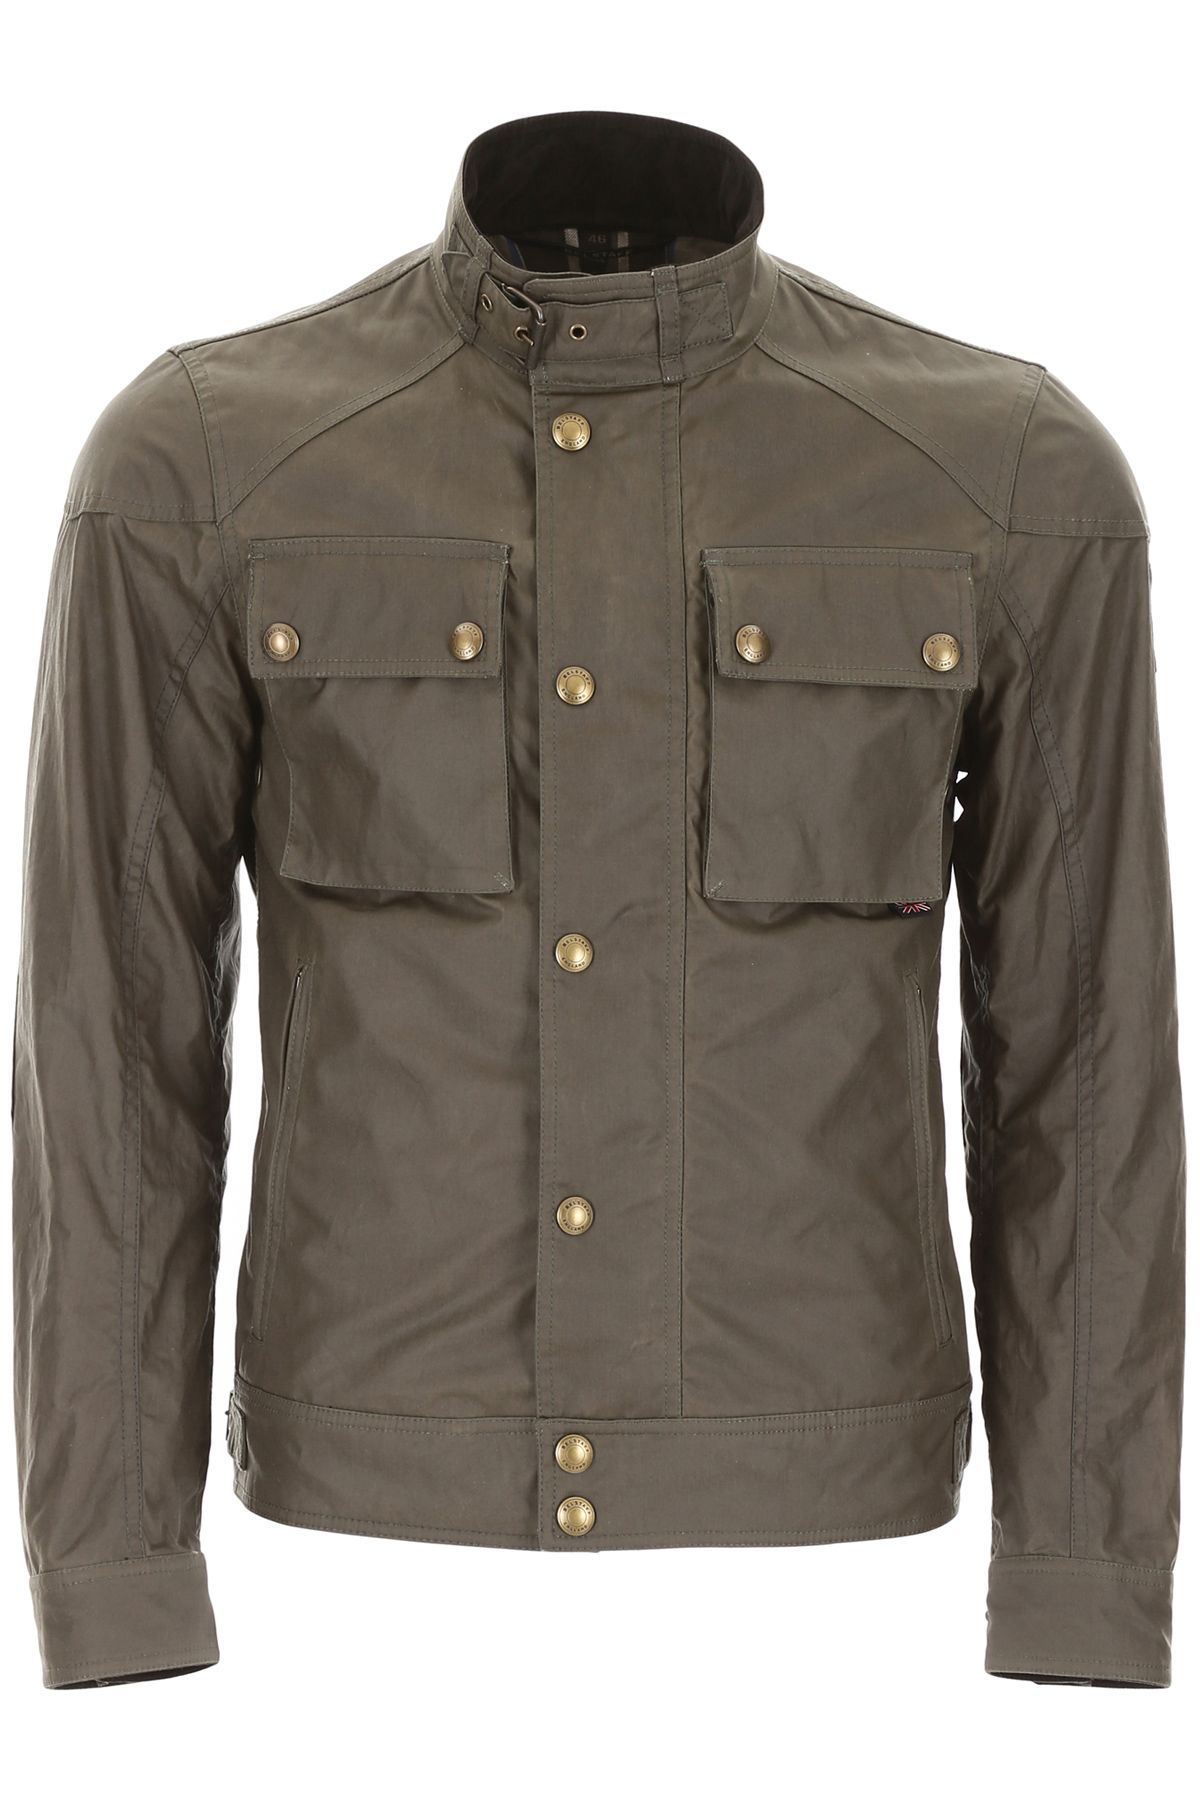 6bde838fb BELSTAFF RACEMASTER JACKET. #belstaff #cloth | Belstaff in 2019 ...